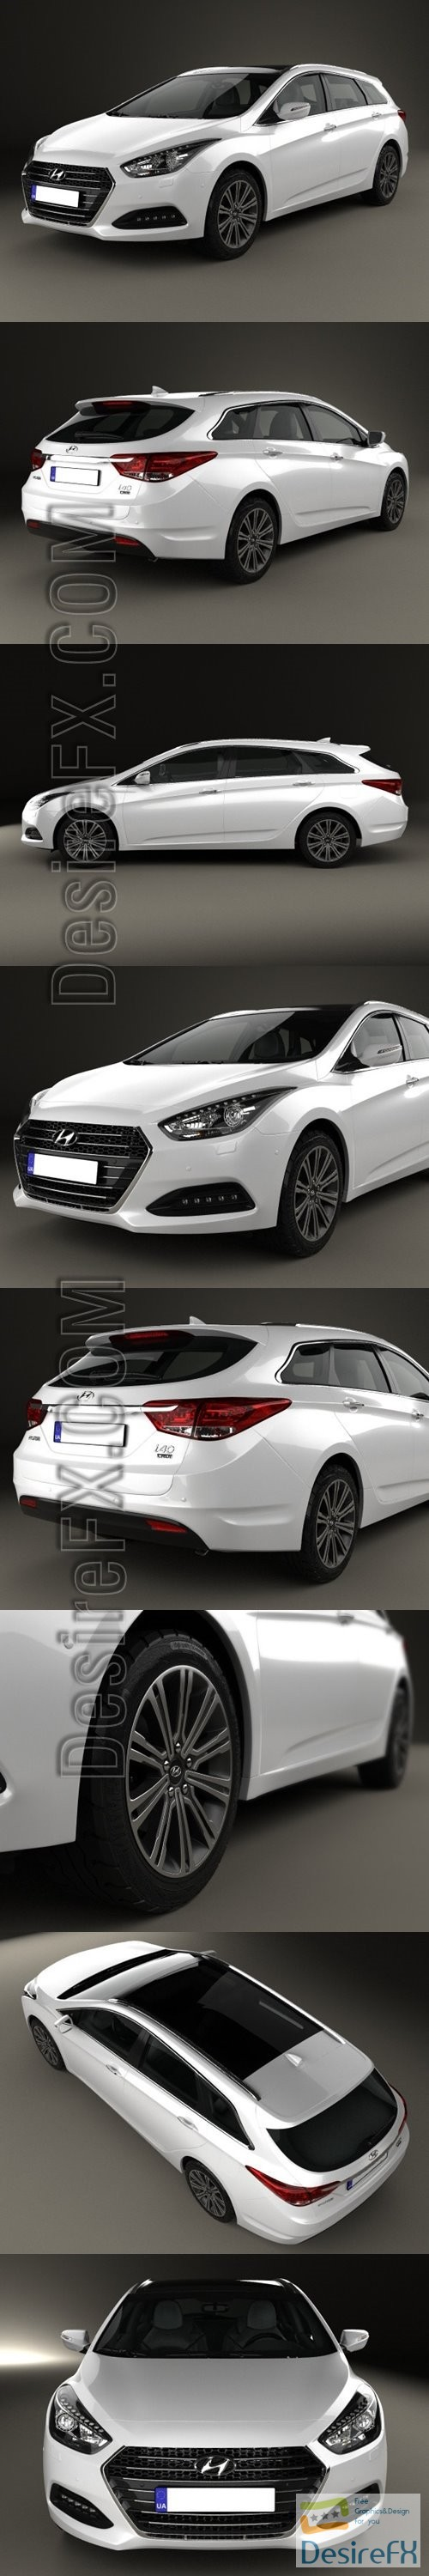 3d-models - Hyundai i40 wagon 2015 3D Model